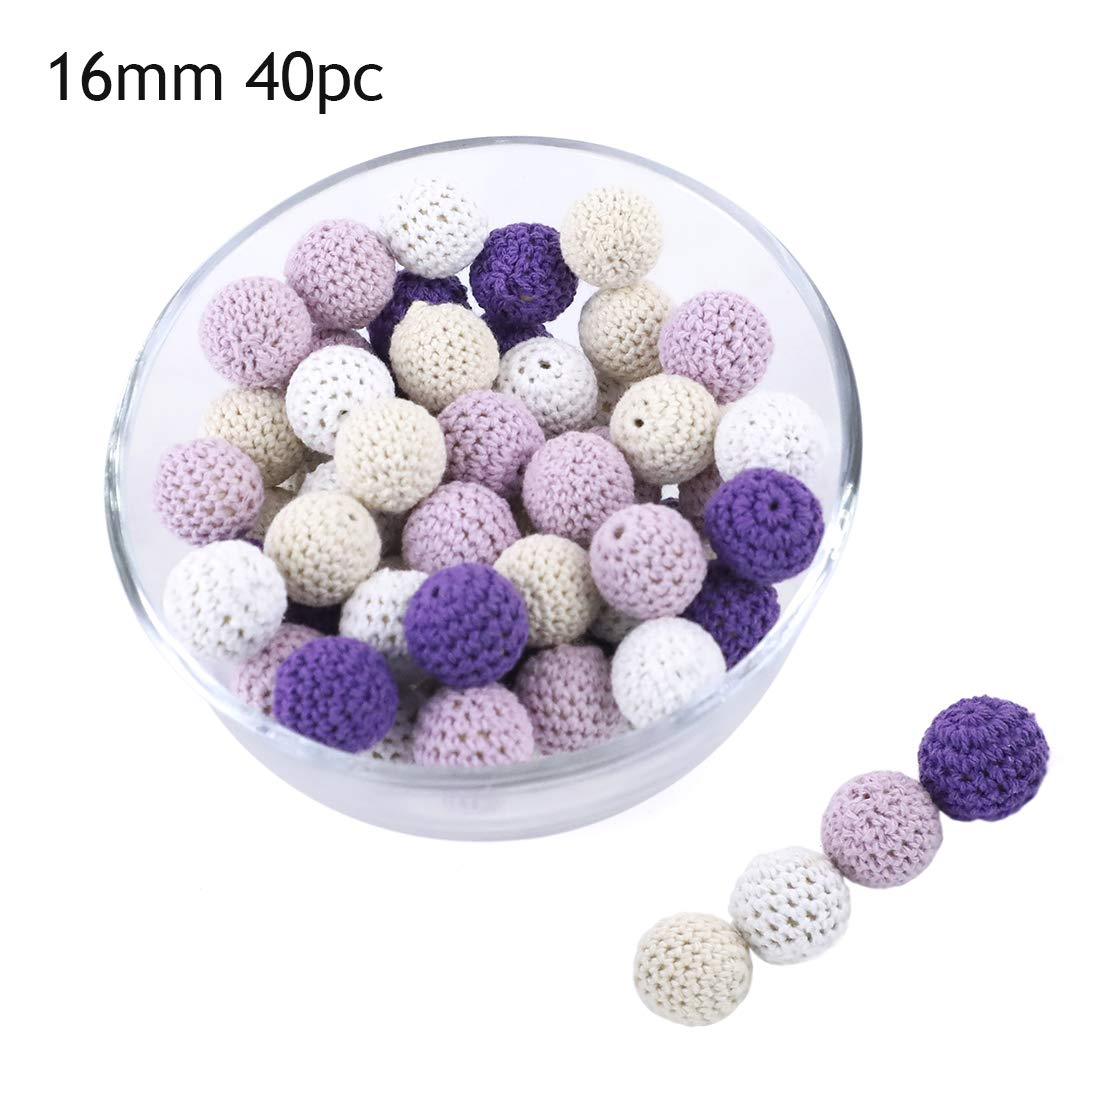 Promise Babe 16mm 40pc DIY Wooden Crochet Beads Purple Series Baby Teether Toys Safety Crochet Covered Beads Nursing Necklace Bracelet Jewelry Accessories